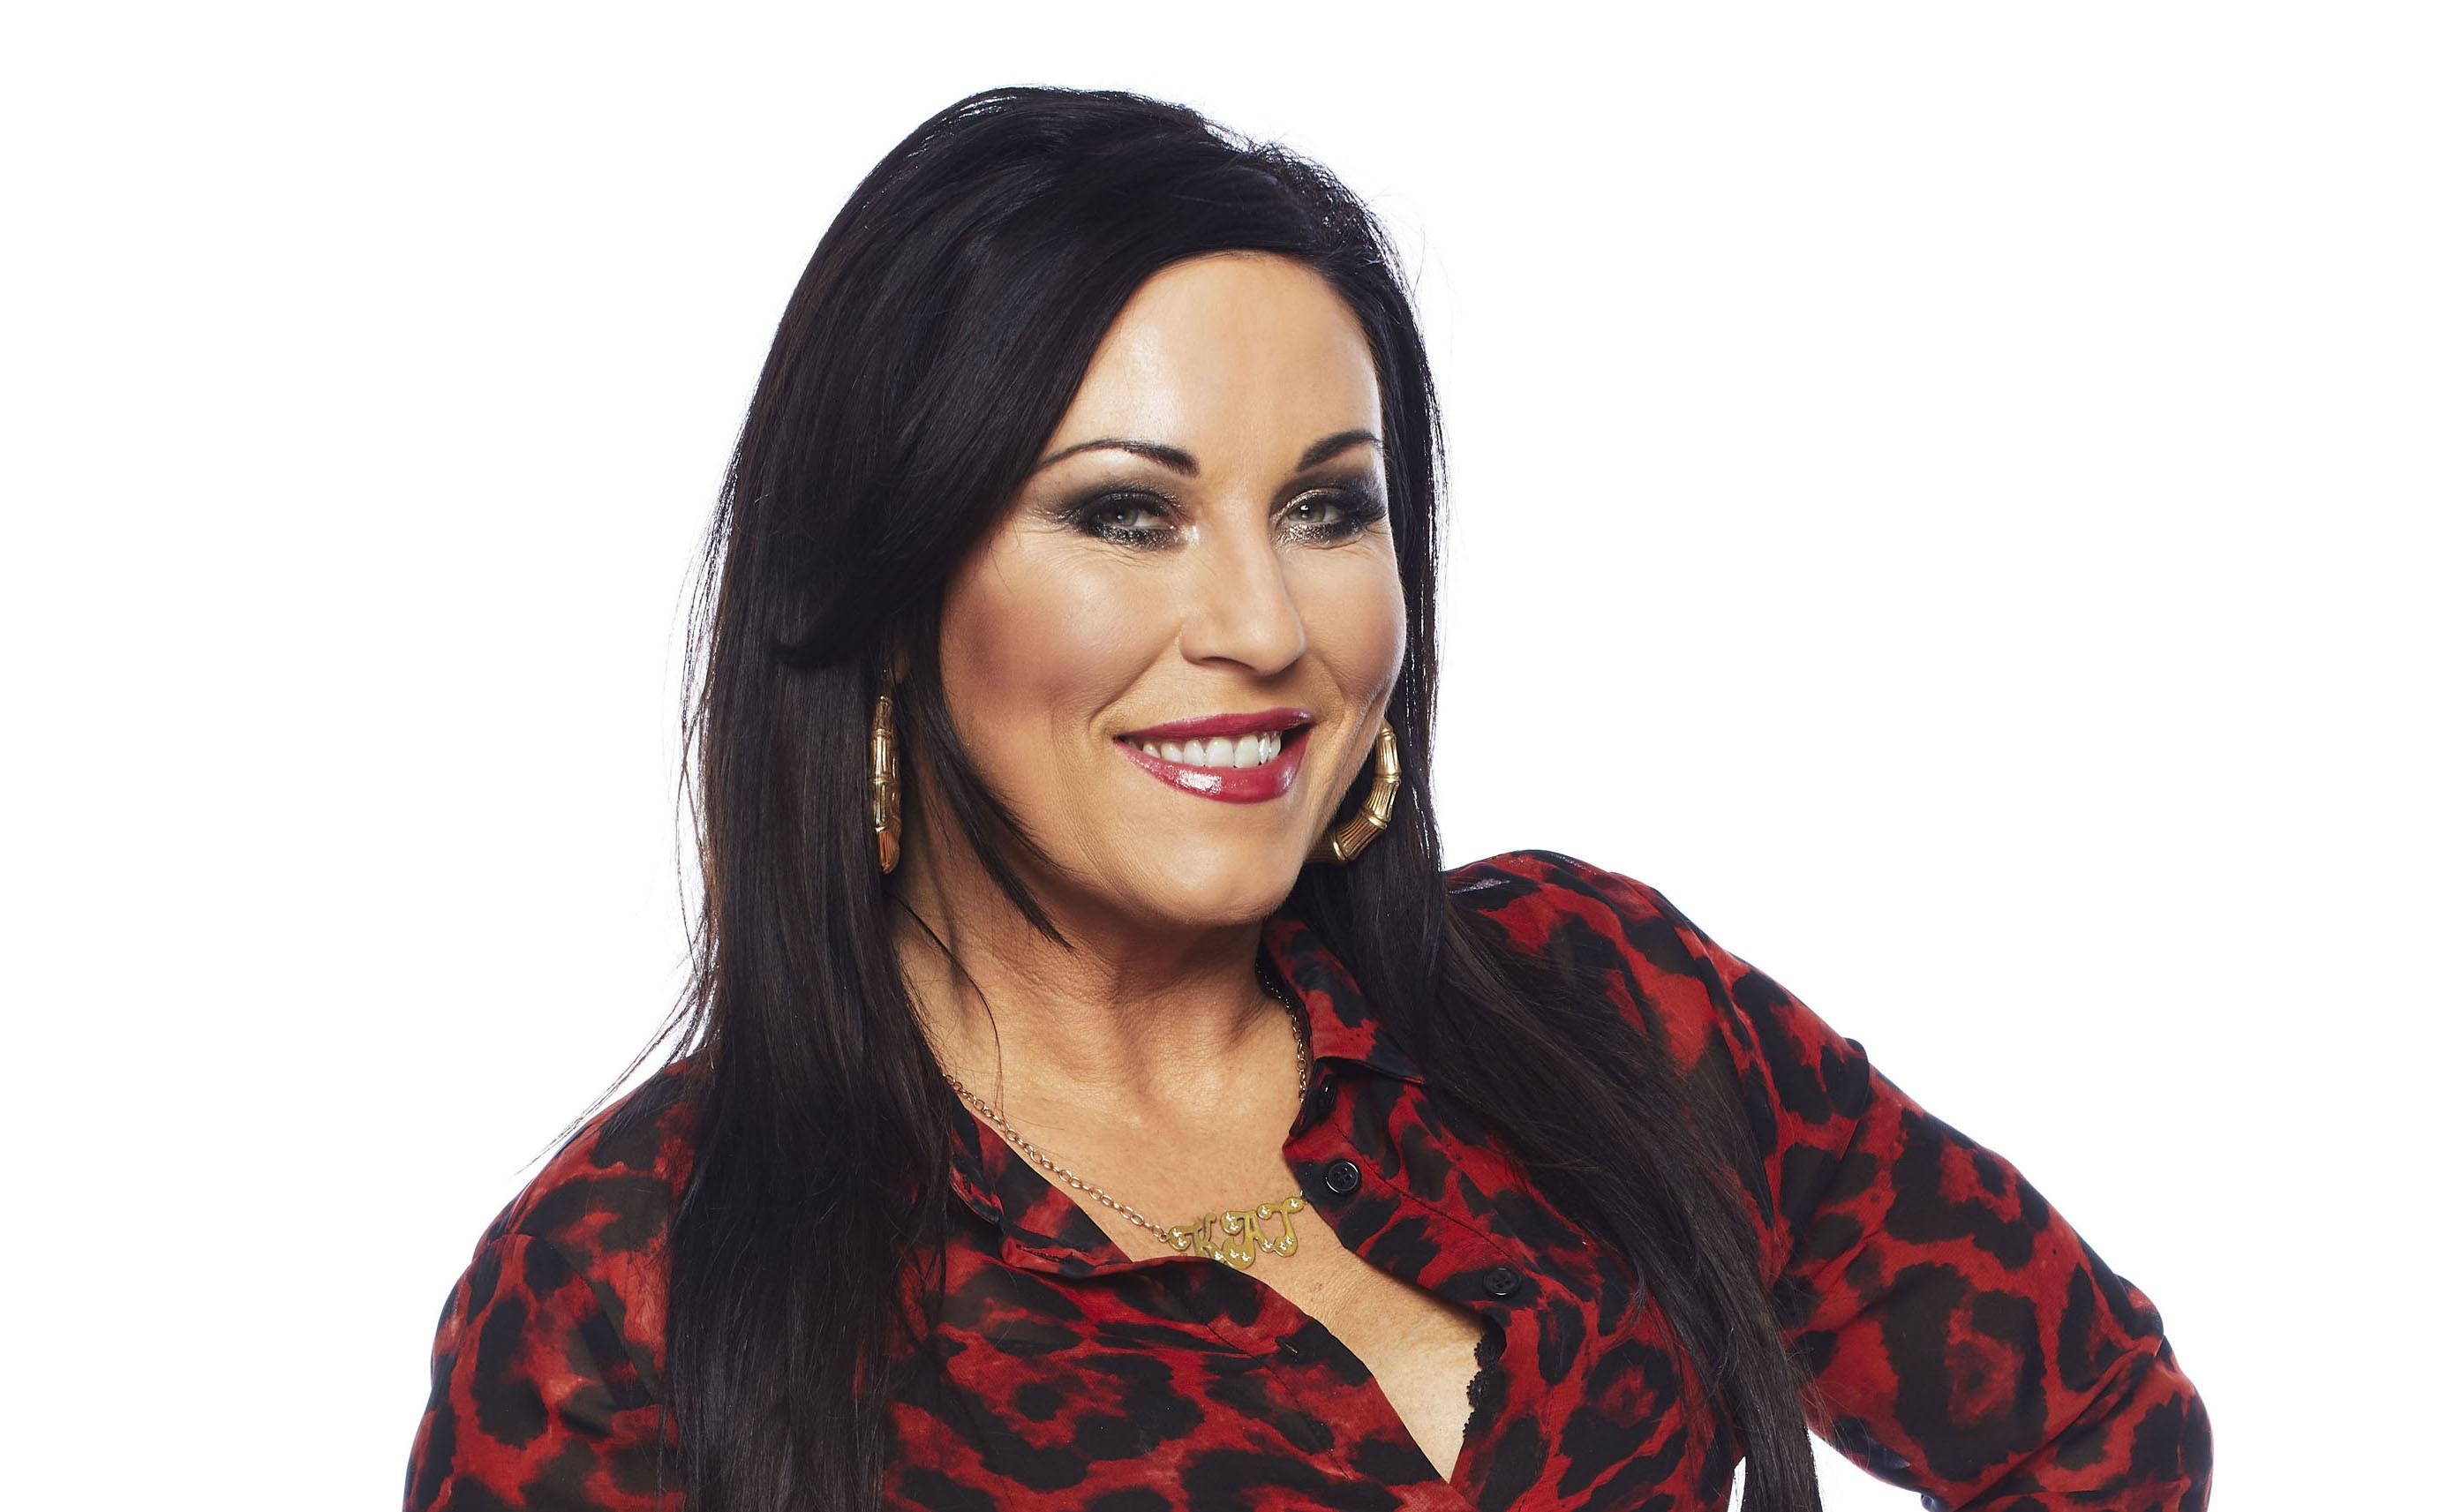 WARNING: Embargoed for publication until 00:00:01 on 13/03/2018 - Programme Name: EastEnders - Portraits 2018 - TX: n/a - Episode: EastEnders - Kat Moon (No. n/a) - Picture Shows: *STRICTLY NOT FOR PUBLICATION UNTIL 00:01HRS TUESDAY 13th MARCH 2018*   Kat Moon (JESSIE WALLACE) - (C) BBC - Photographer: Nicky Johnston